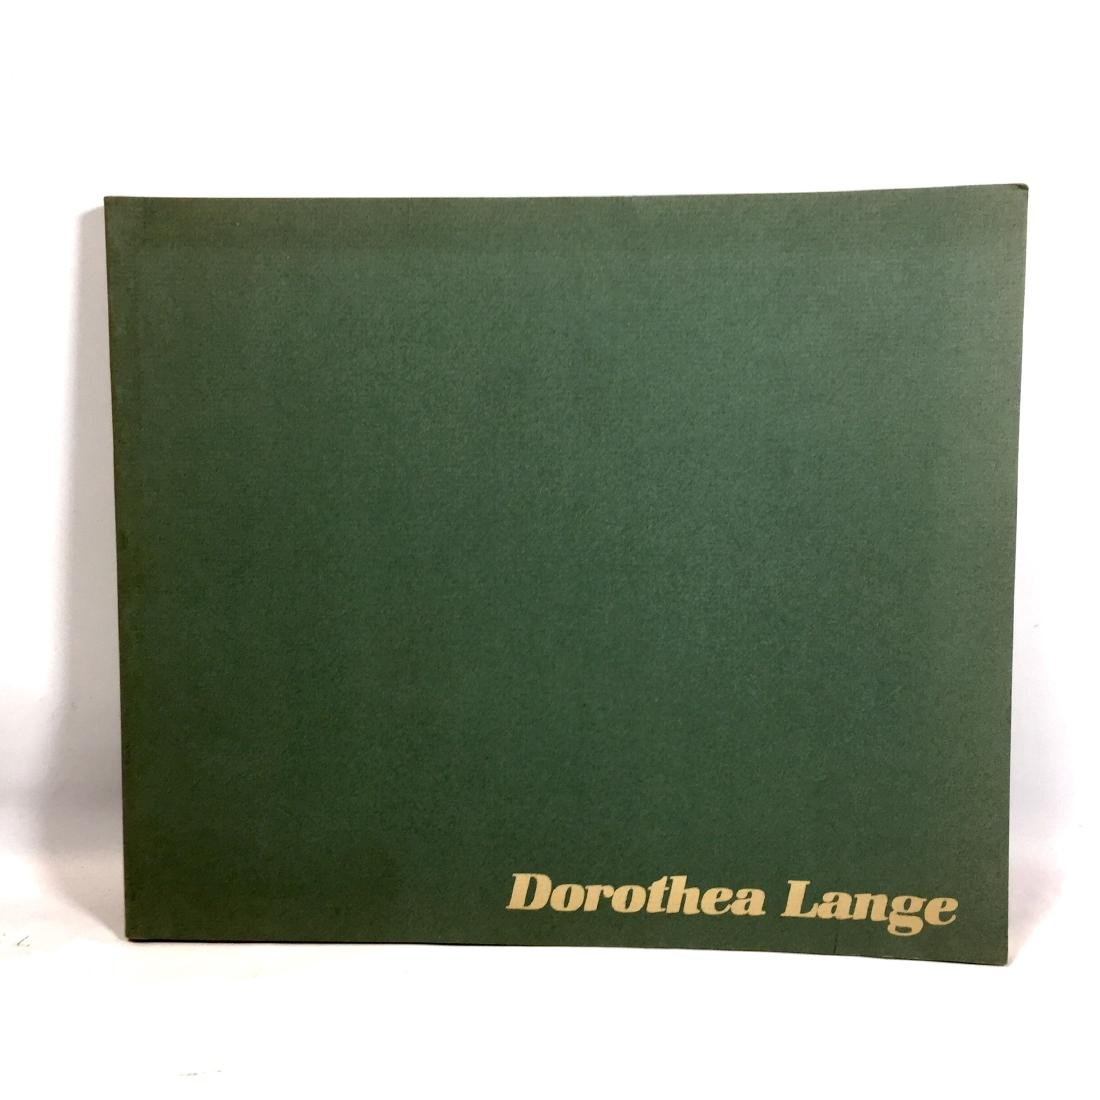 Dorothea Lange Therese Thau Heyman First Edition